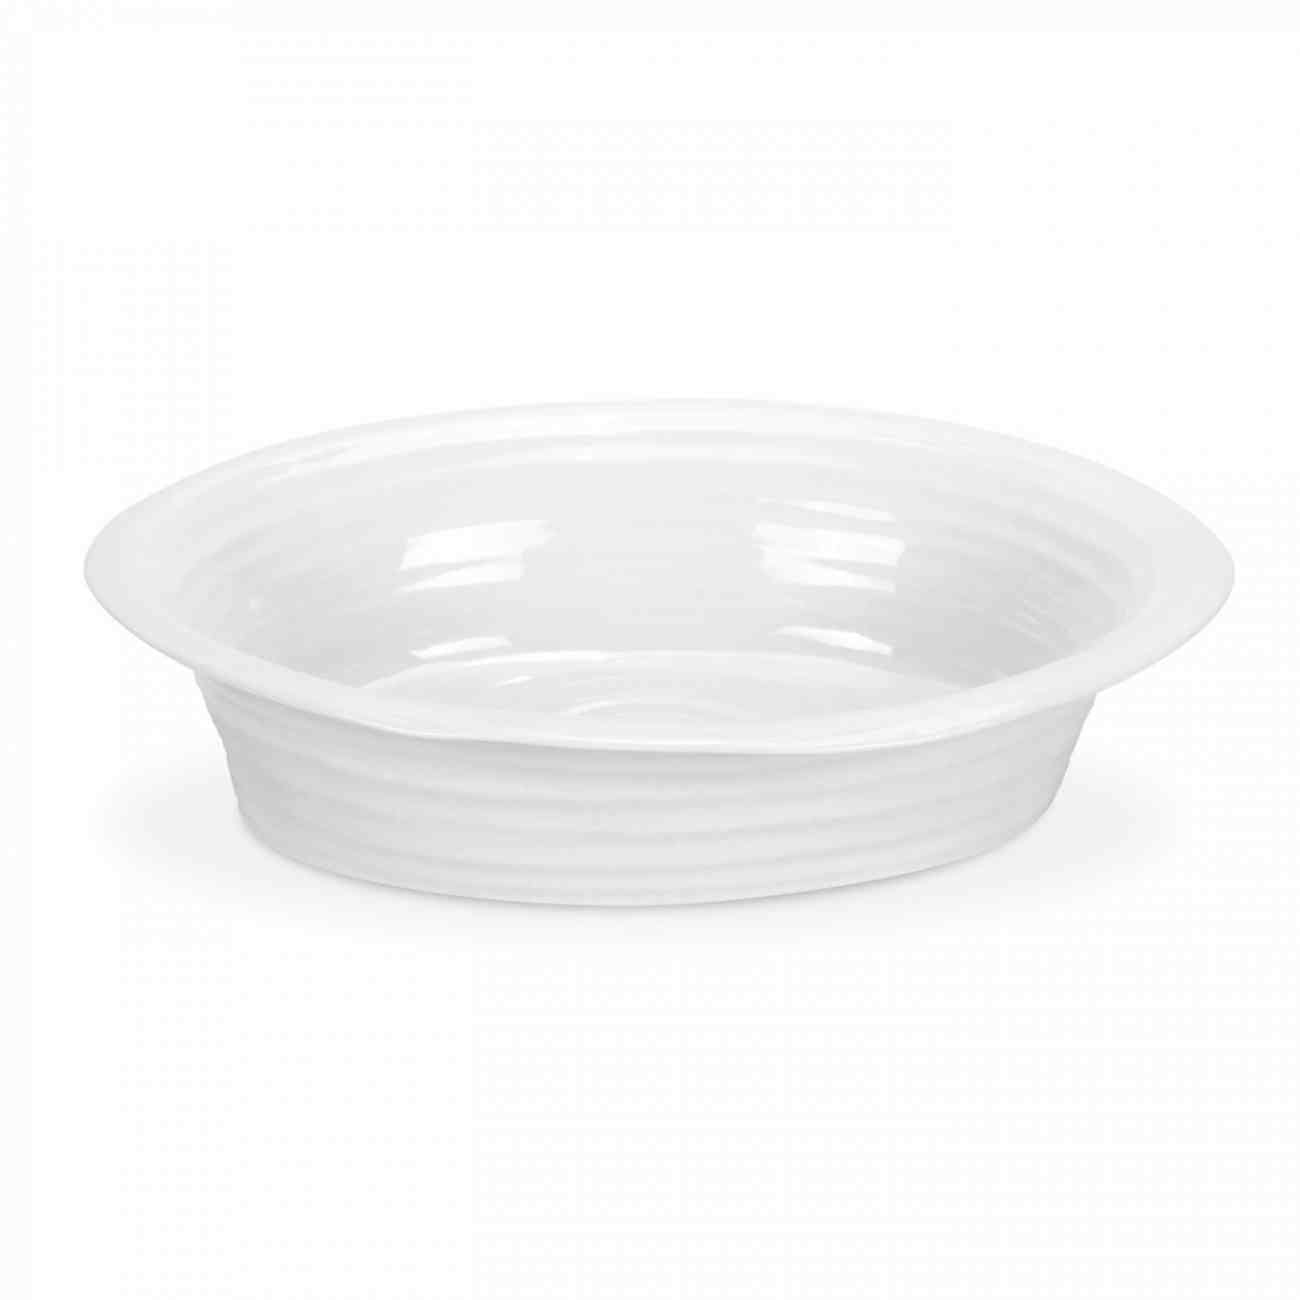 """SOPHIE CONRAN BAKER/PIE DISH LARGE OVAL 29.5cm/ 11.75"""" CPW76831-X"""